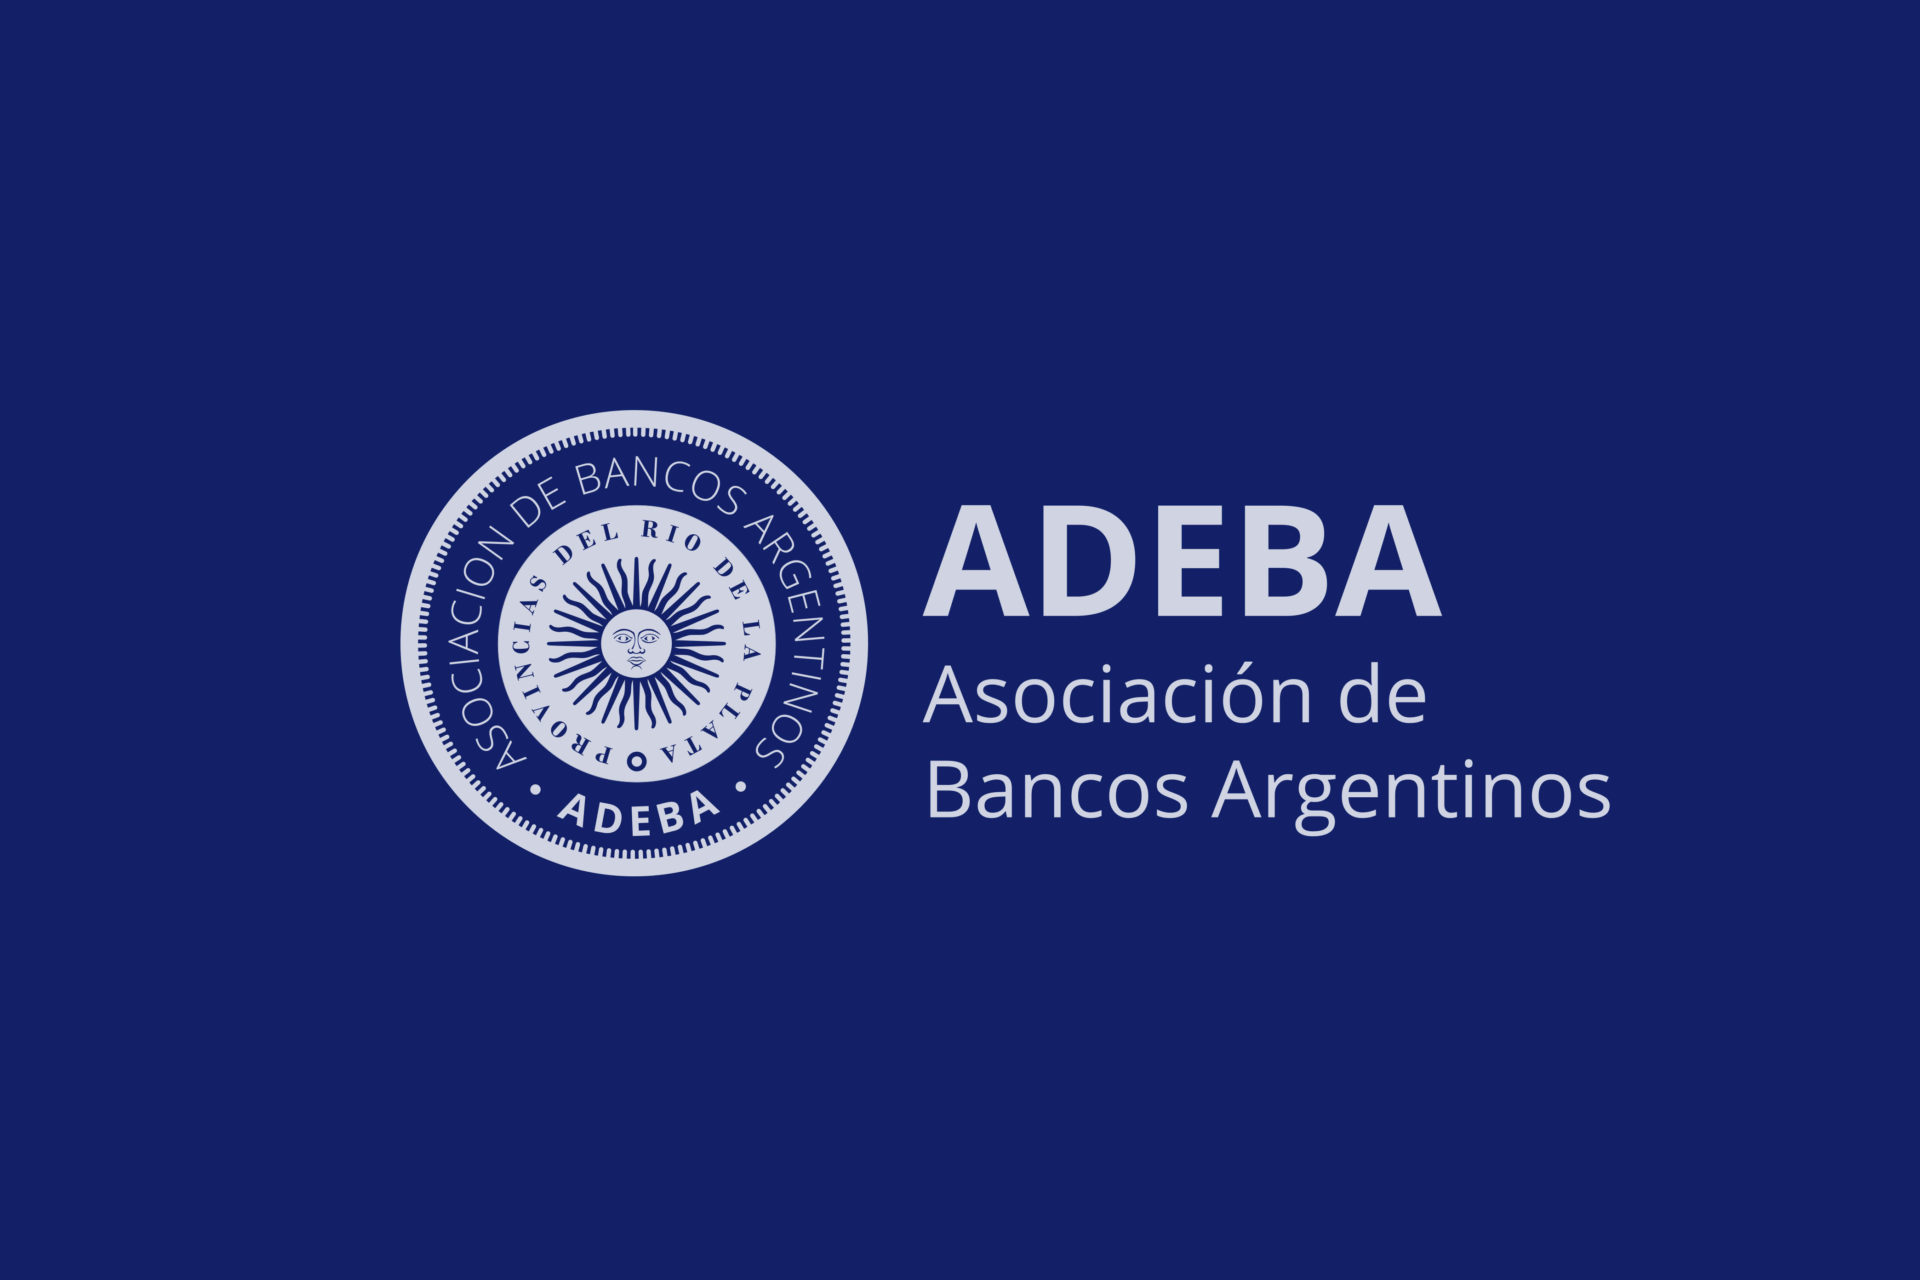 El Banco Central en ADEBA